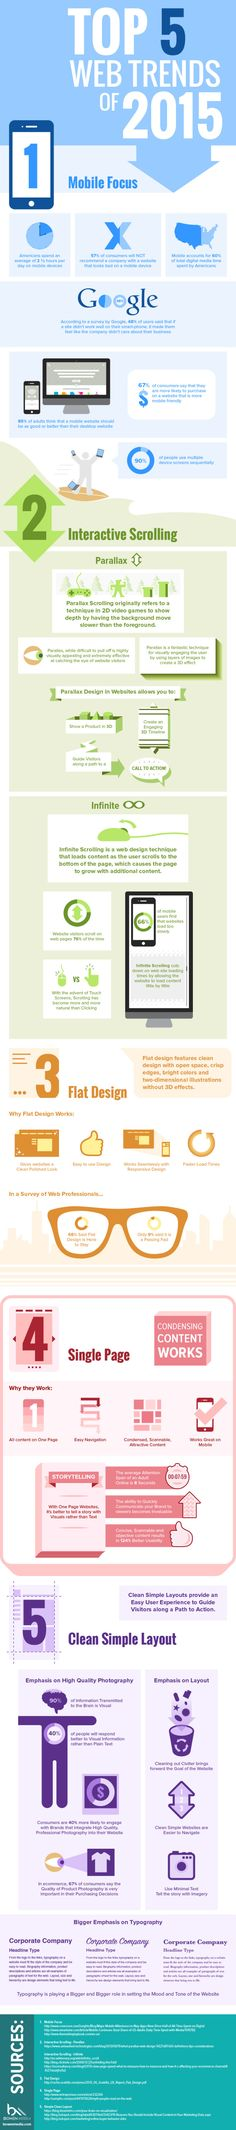 #Marketing #Infographic: Five Web Trends That May Take Off In 2015